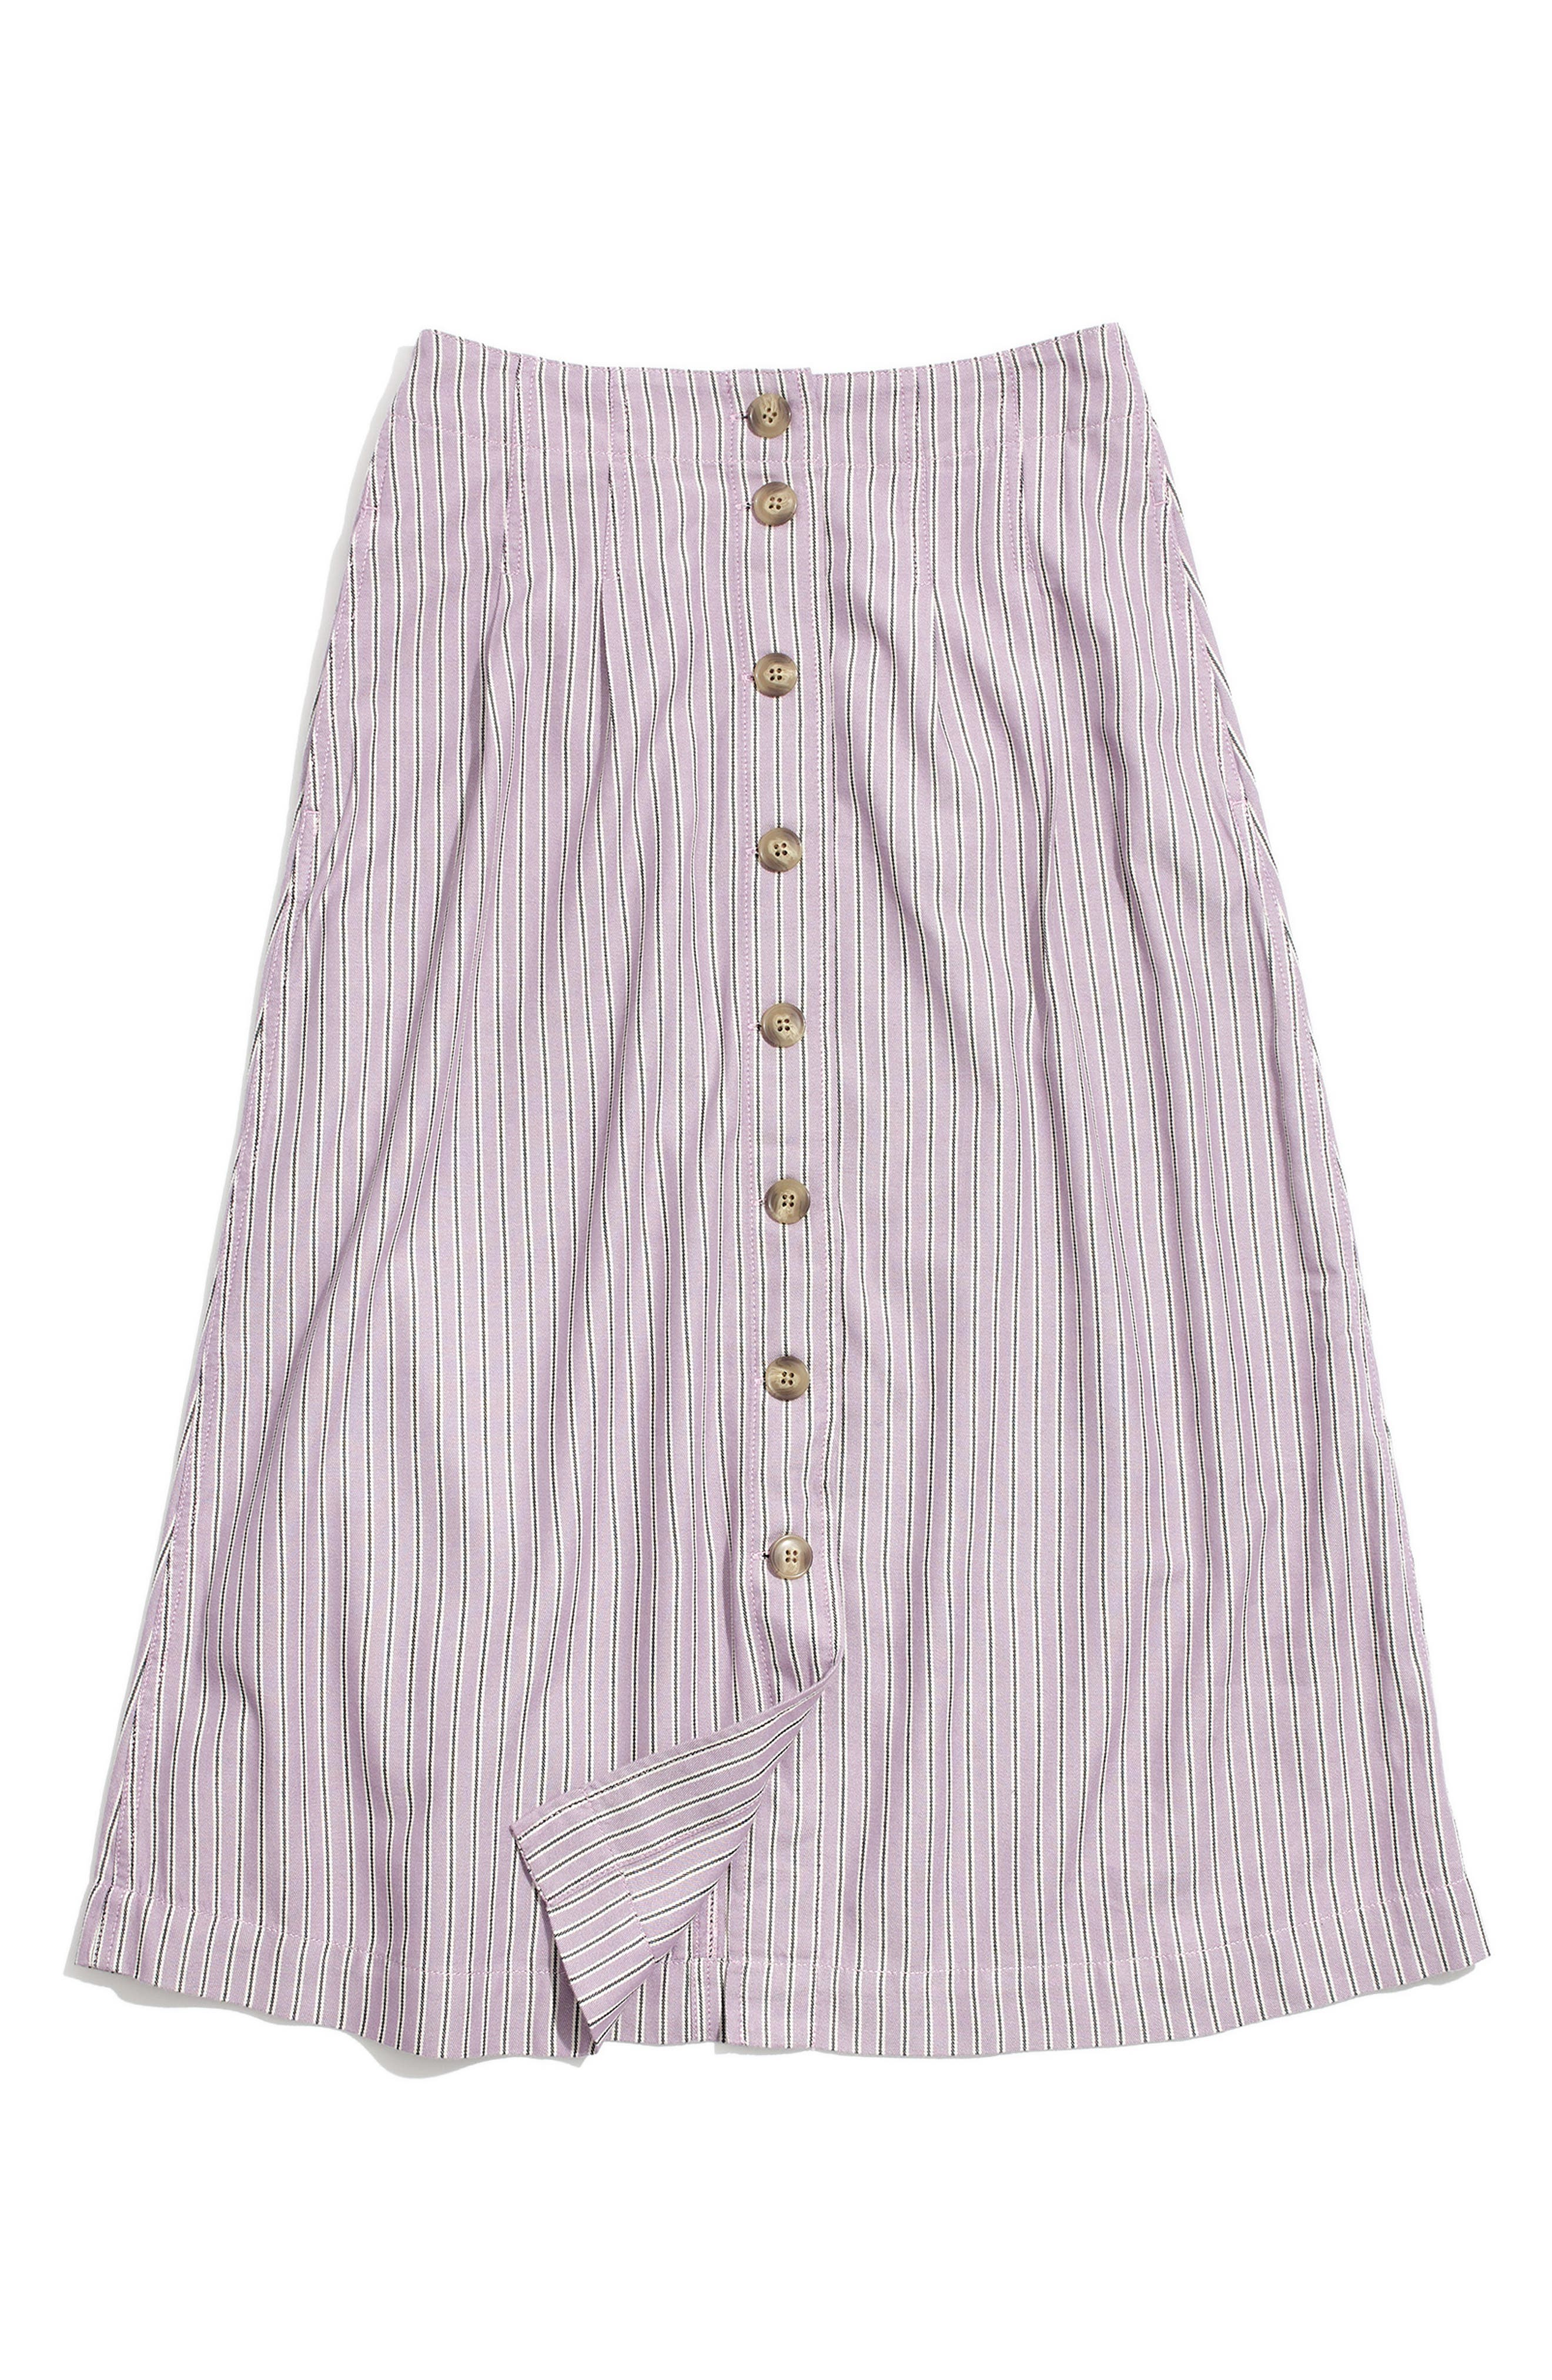 MADEWELL, Patio Lilac Stripe Button Front Midi Skirt, Main thumbnail 1, color, SERINE LAVENDER RENSER STRIPE